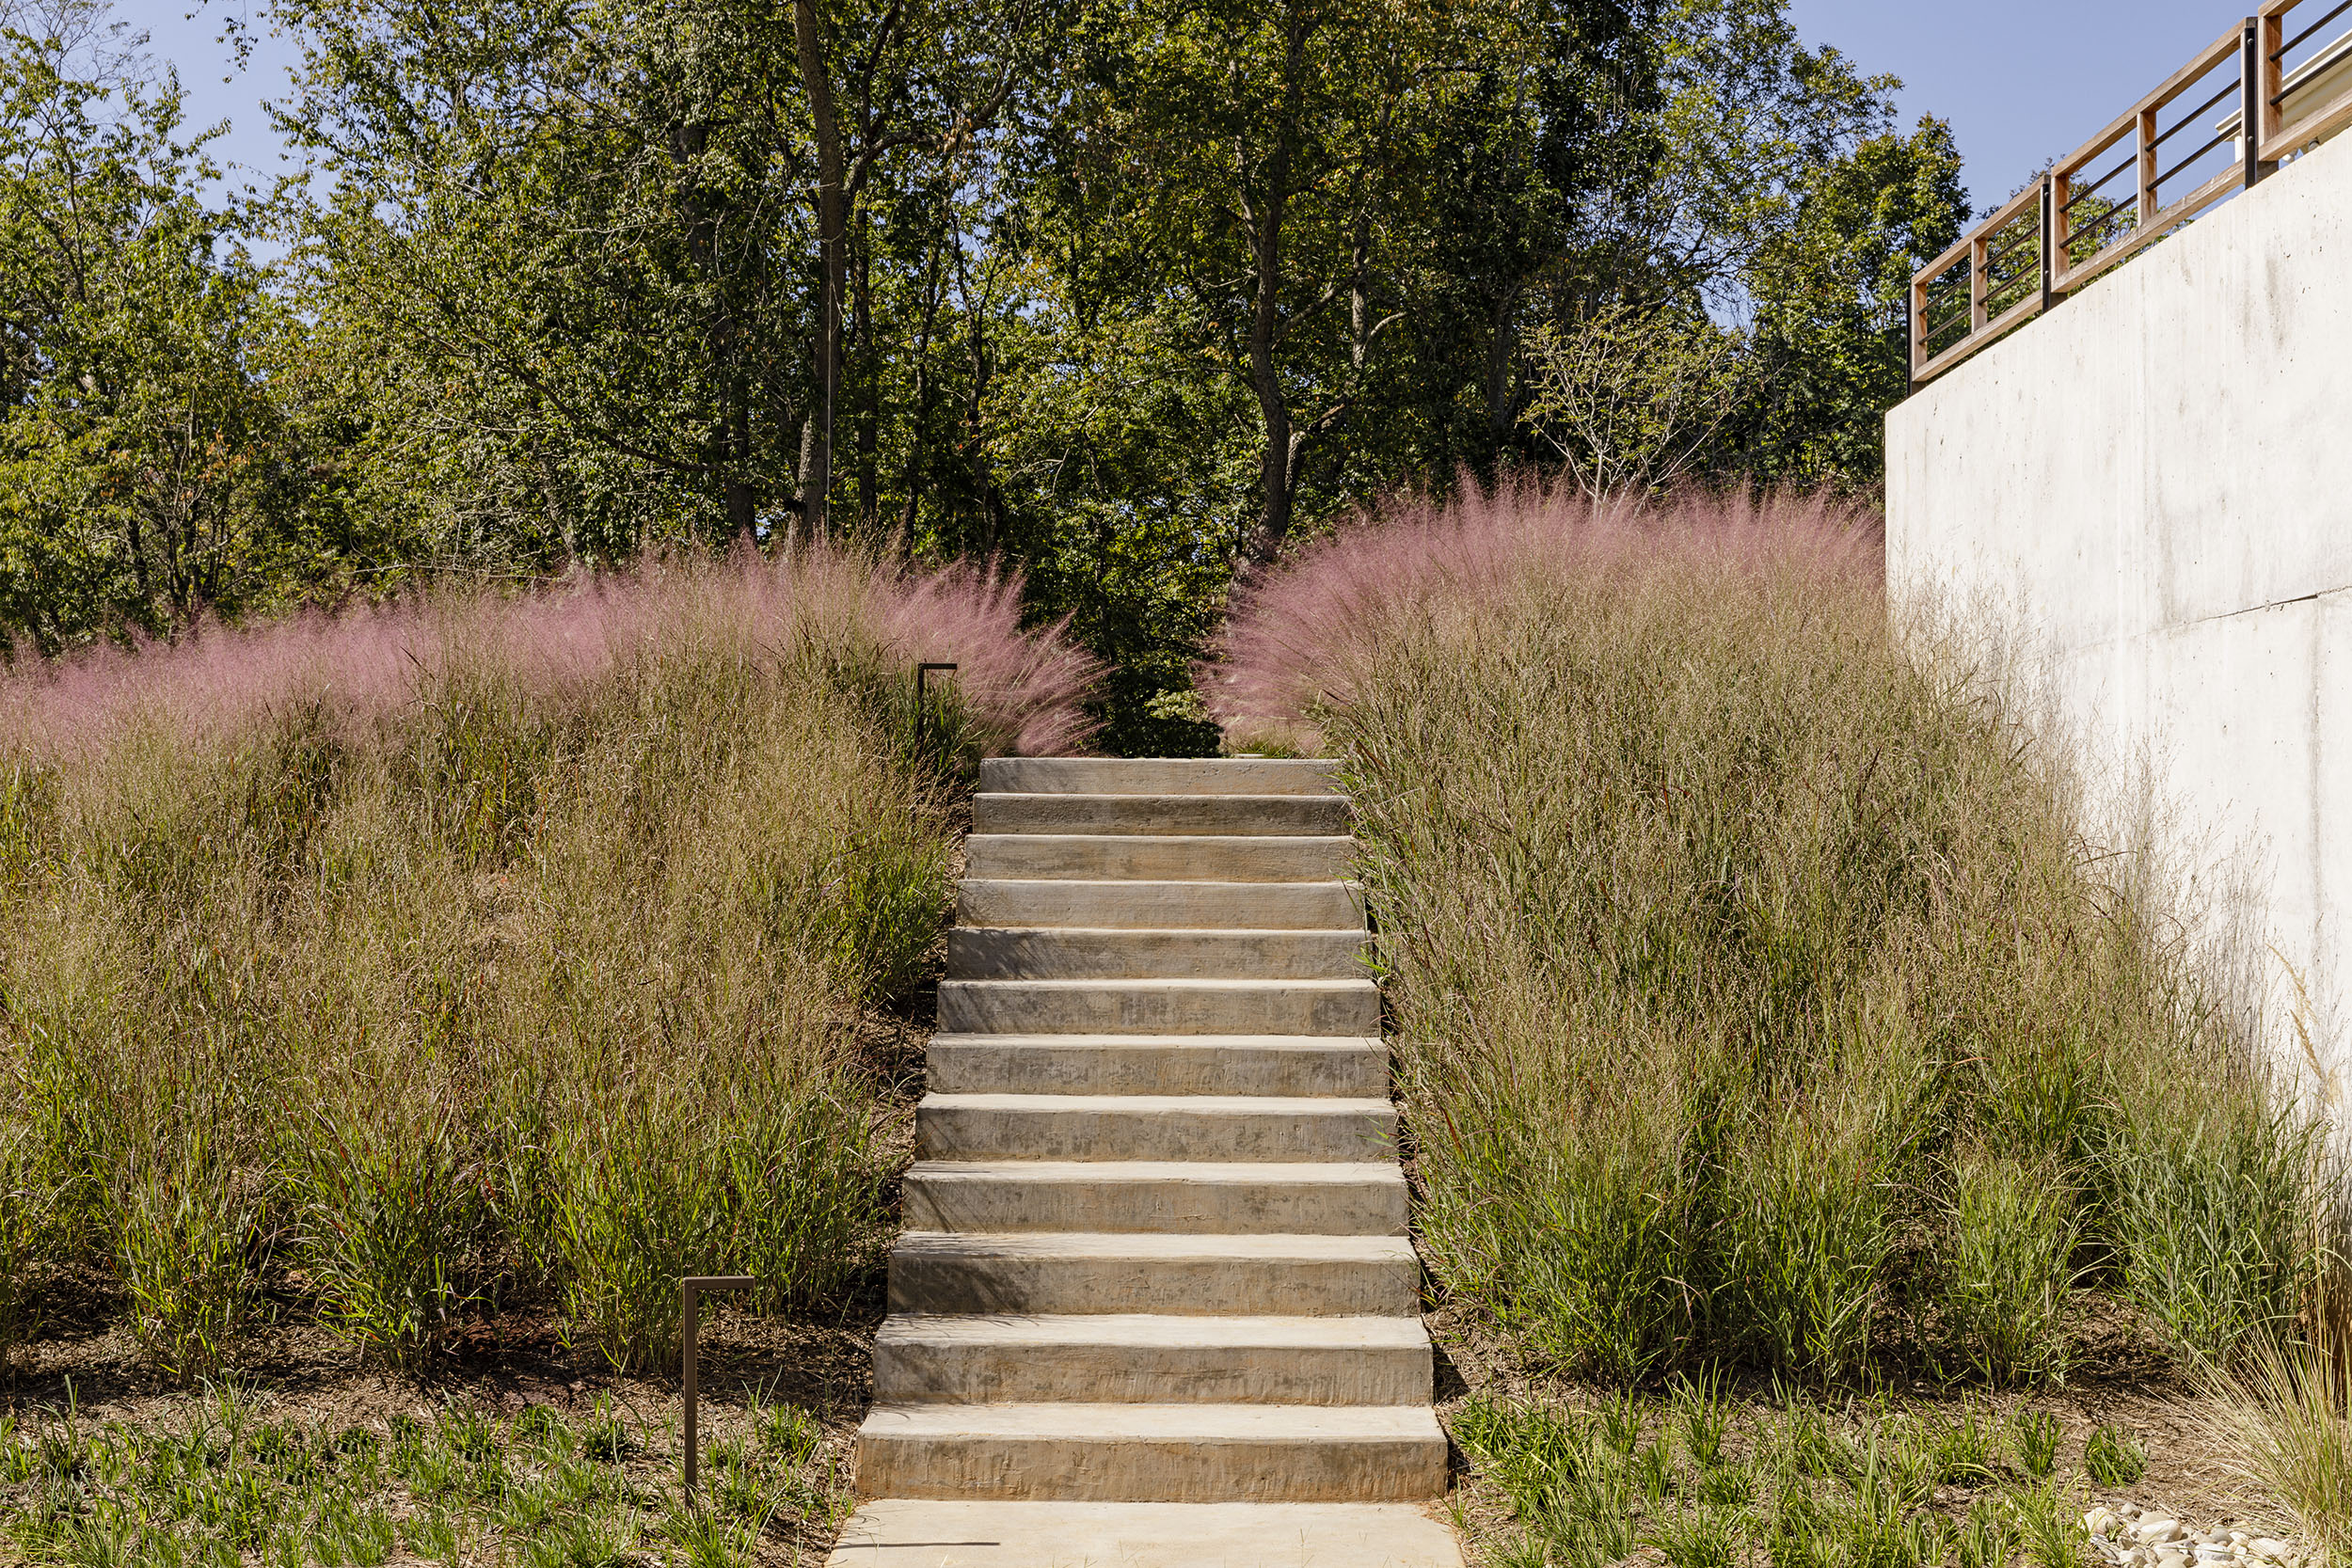 Grounded_stair_muhly-grass_landscape-architecture-virginia.jpg